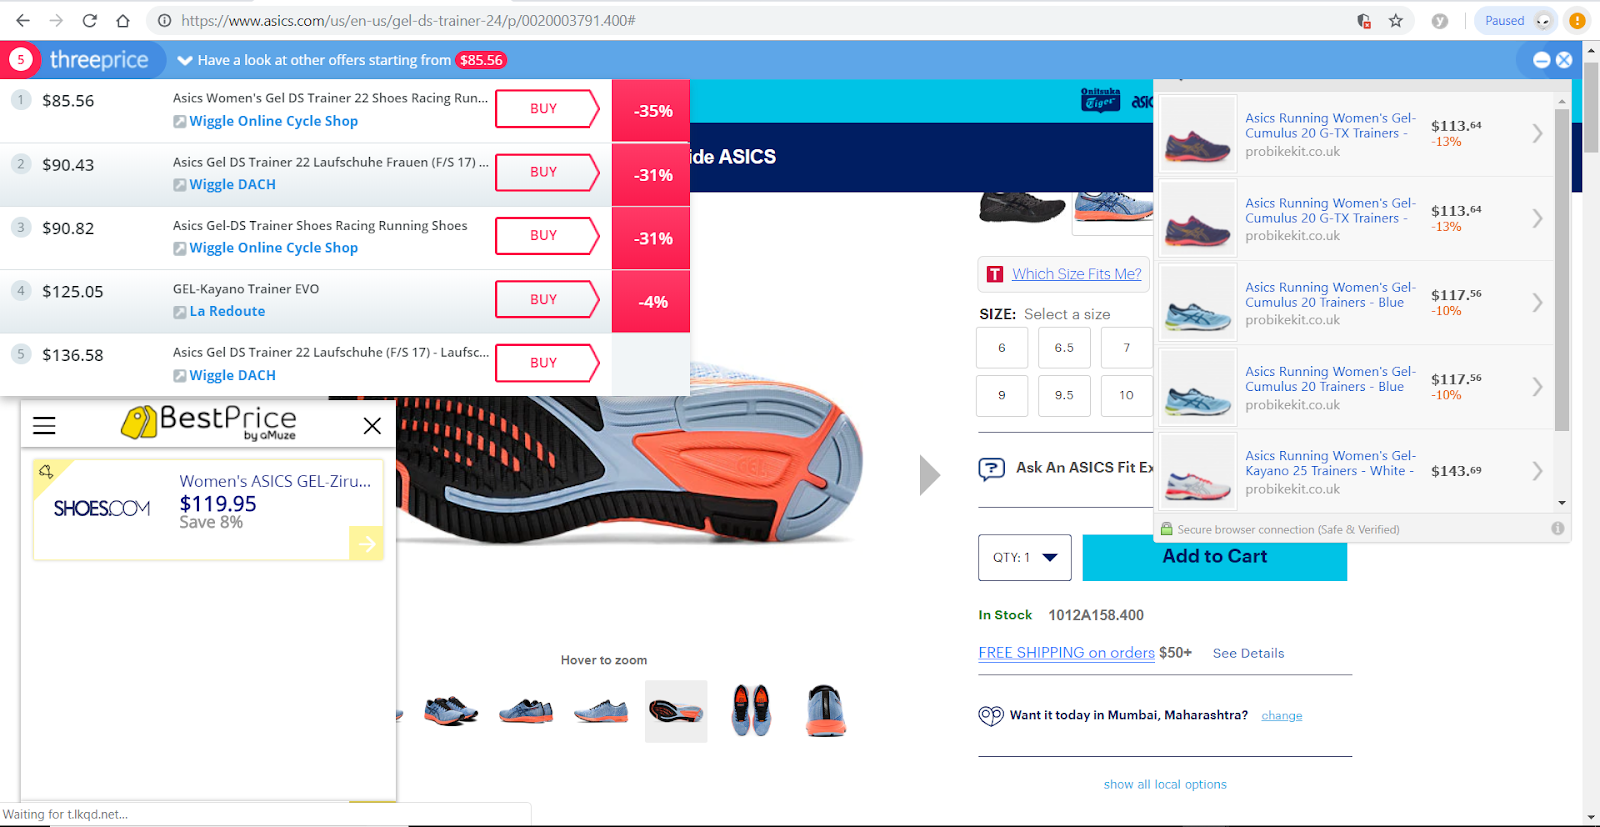 price comparison browser injected ads